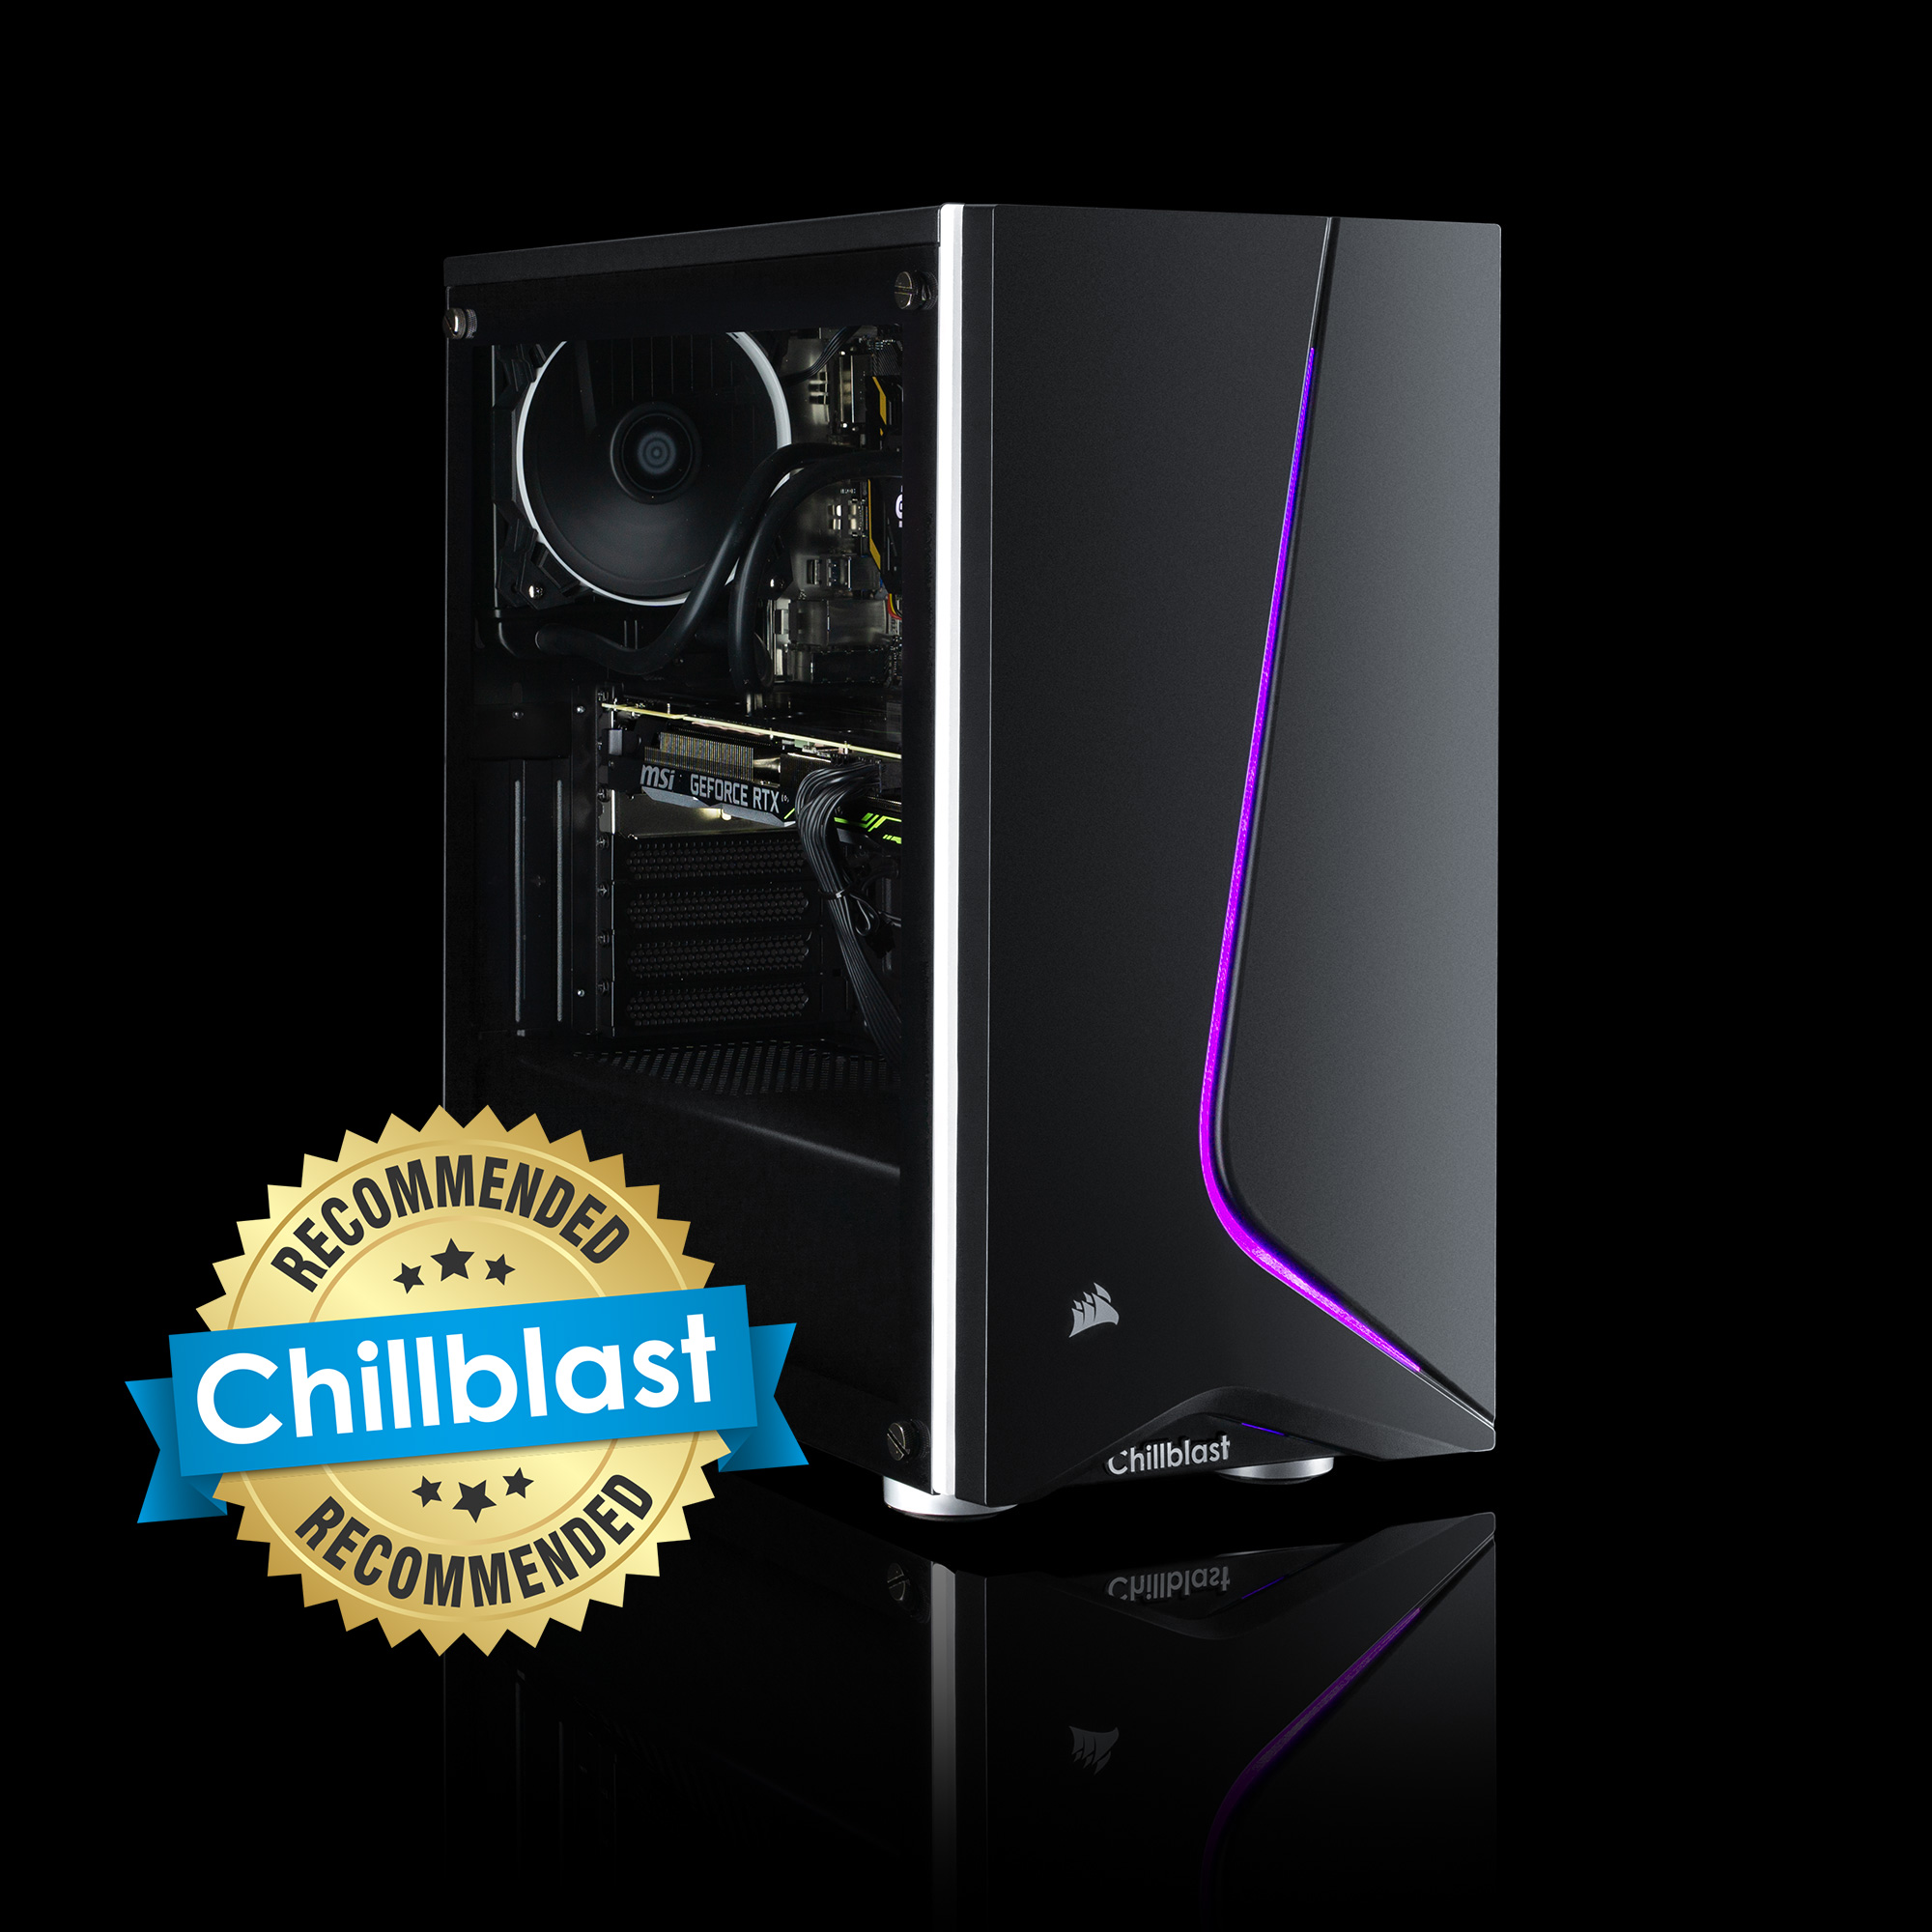 Chillblast Recommended: Fusion RTX 2080 Custom Gaming PC